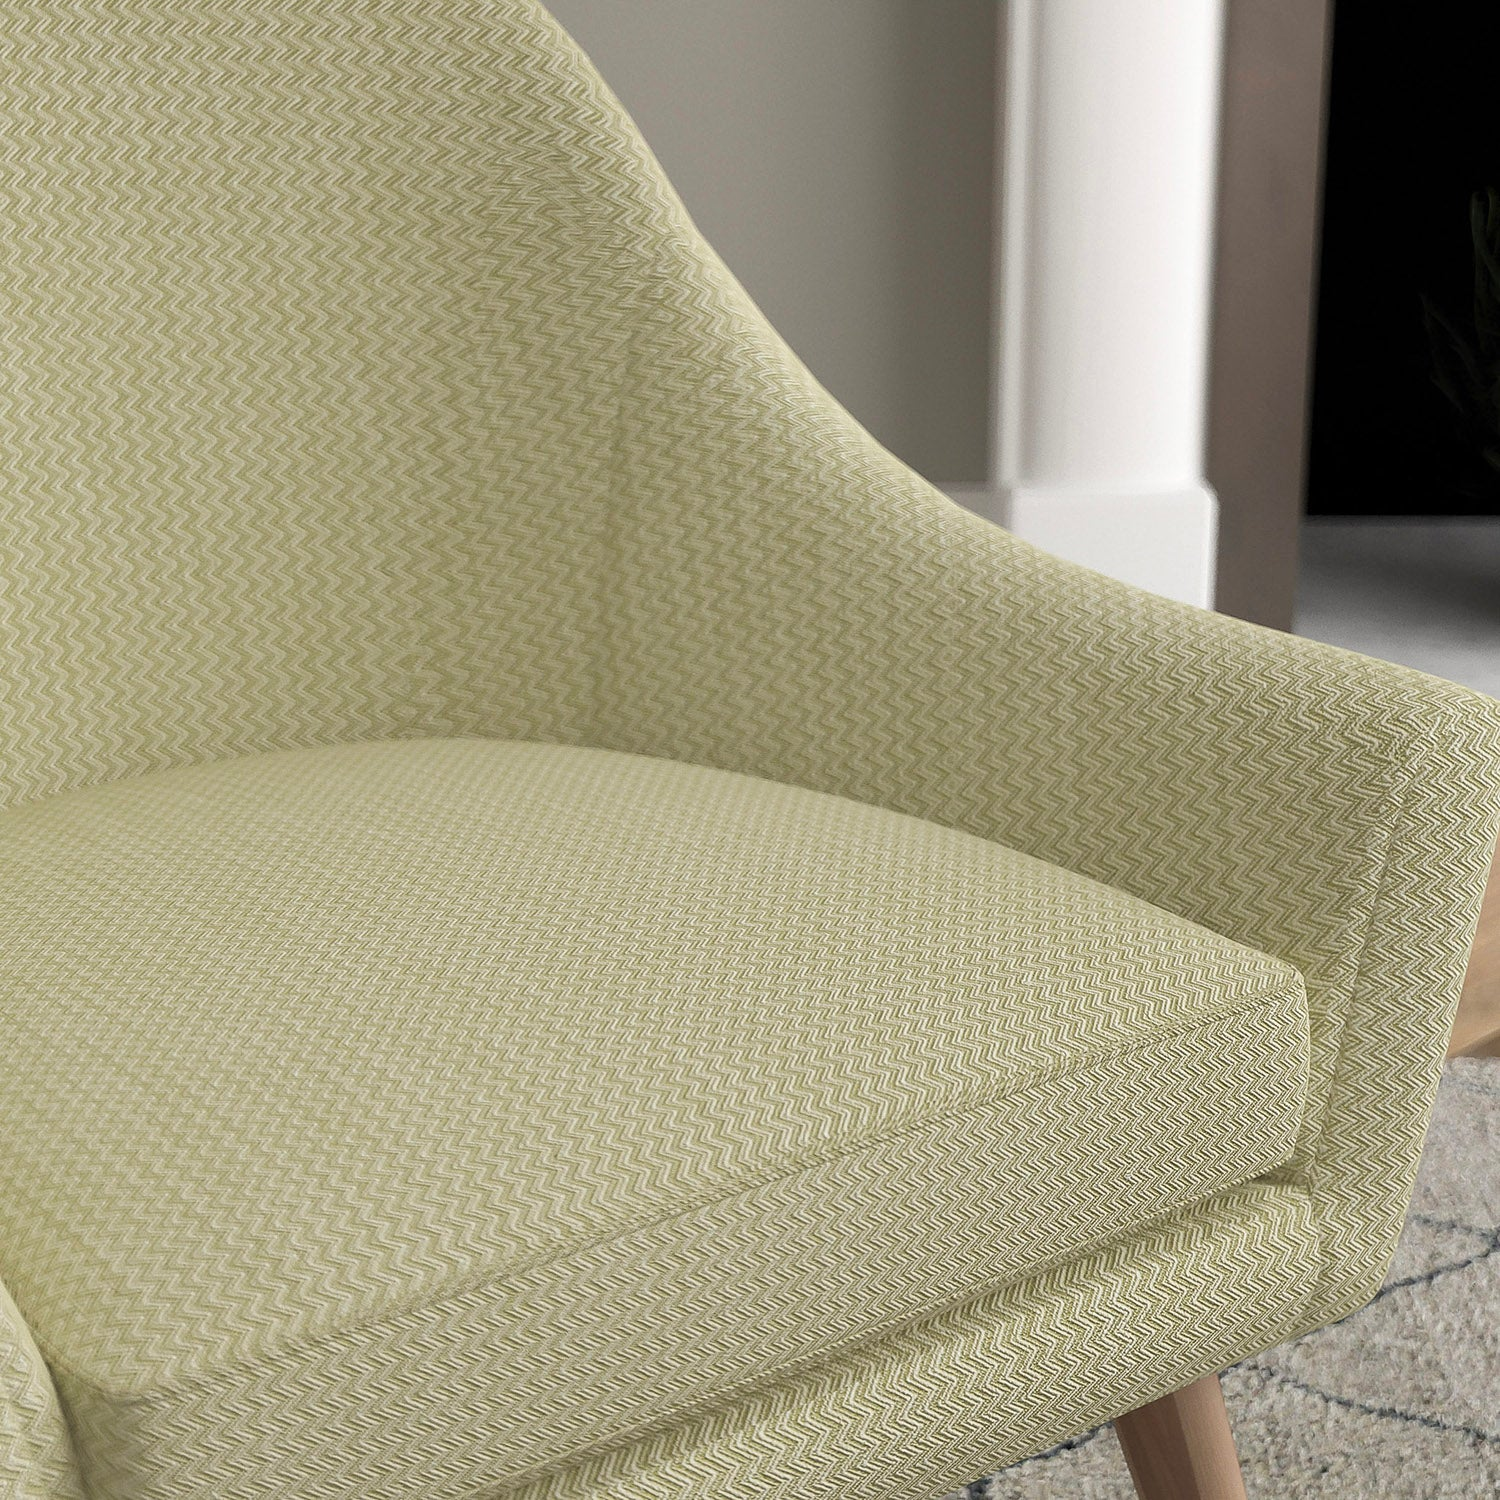 Sofa in a green upholstery fabric with chevron design for contract and domestic furnishings